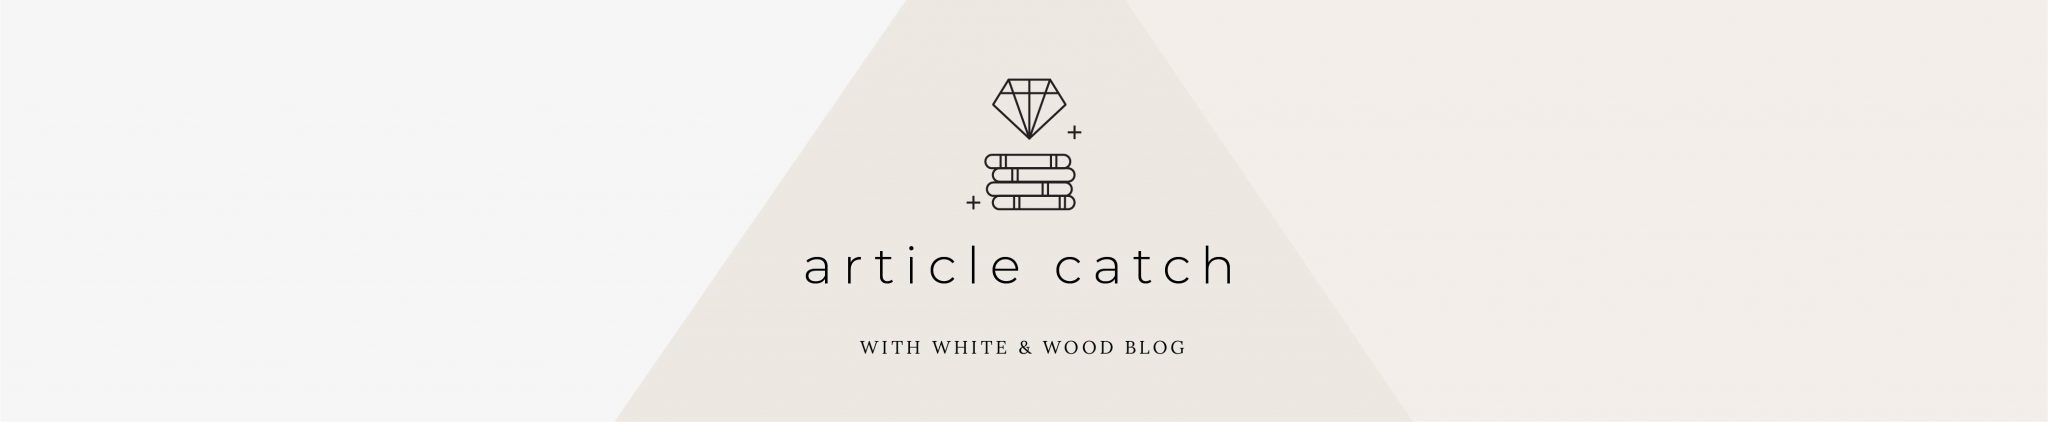 Article Catch With White and Wood Blog